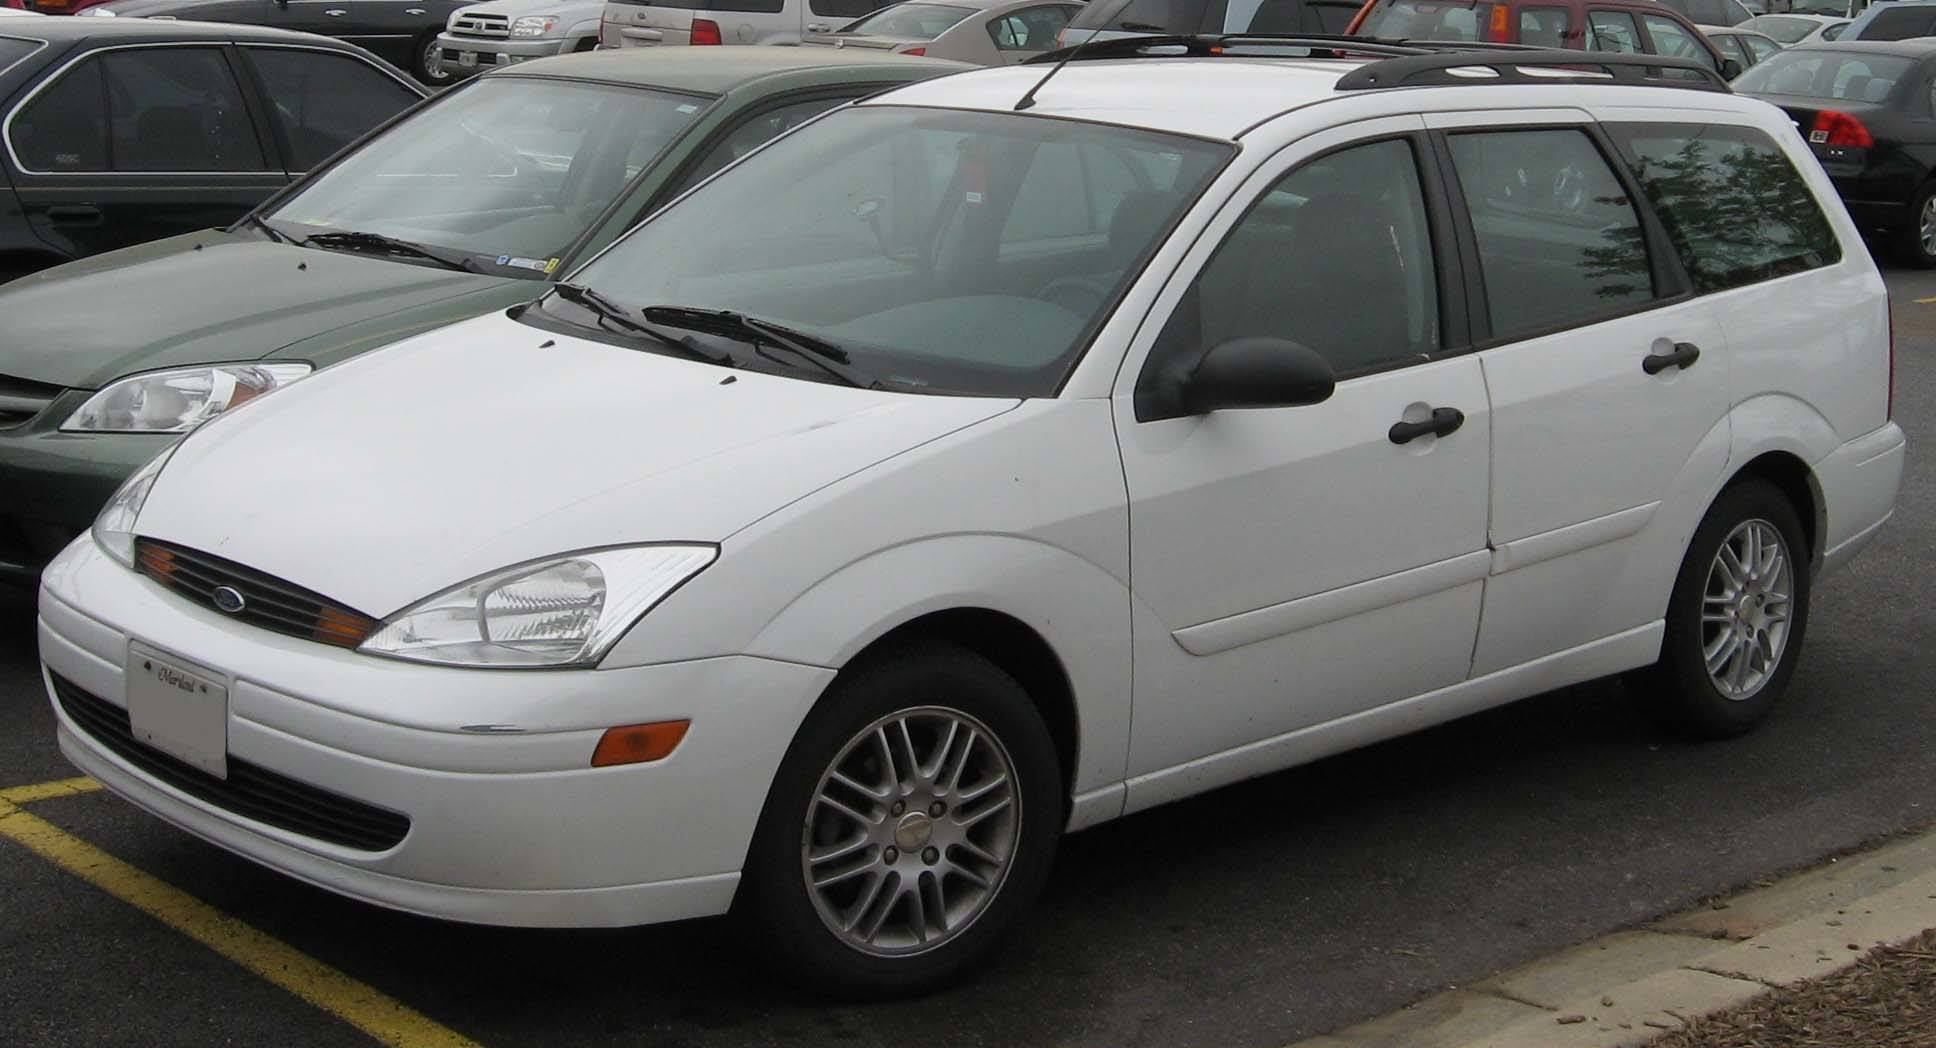 2001 Ford Focus Zx3 >> 2003 Ford Focus SE - Wagon 2.0L auto